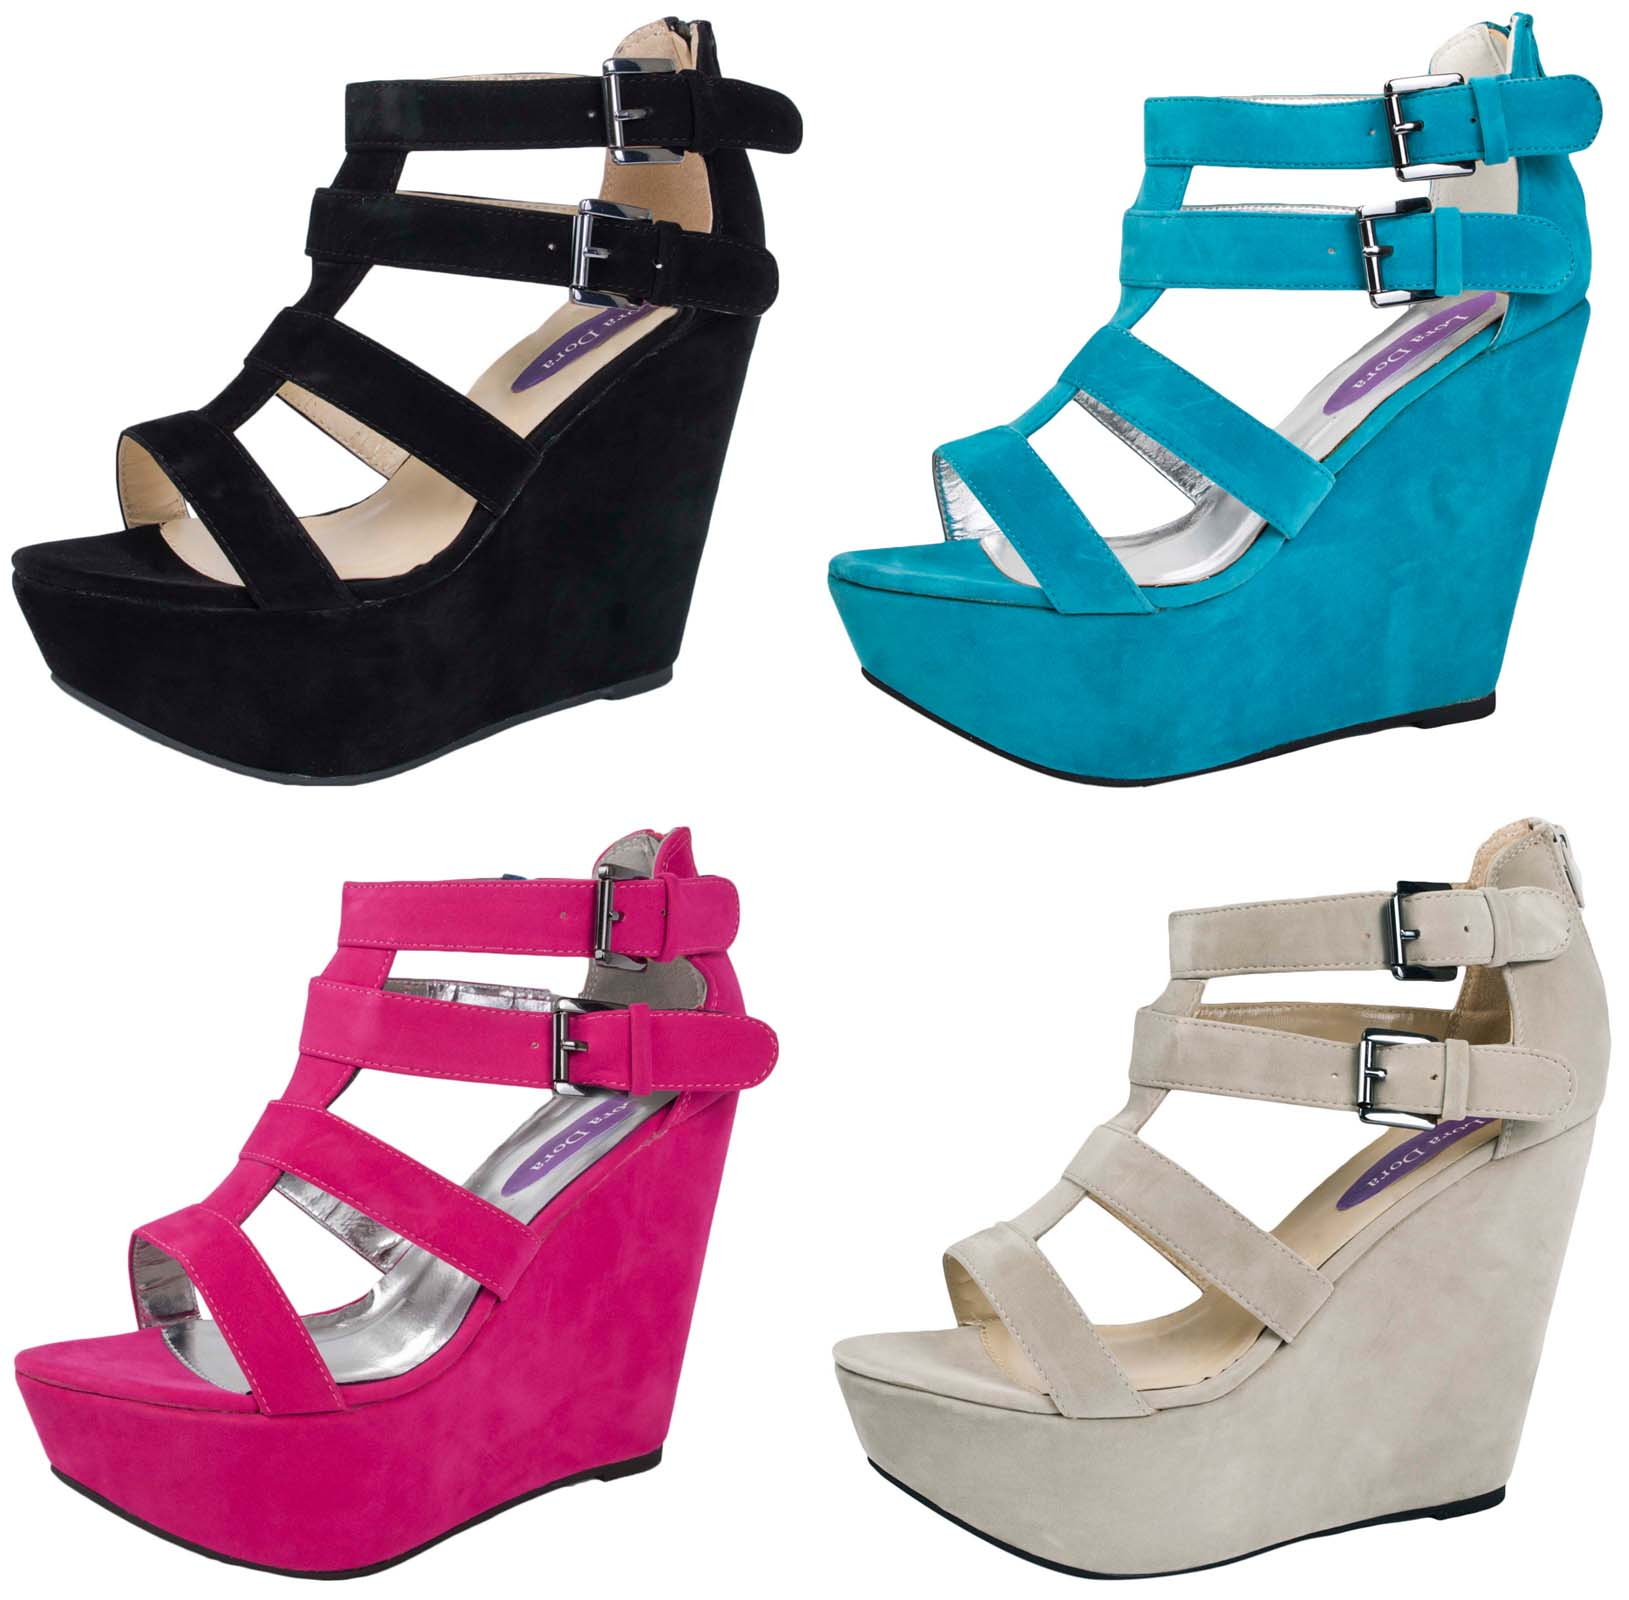 fbd37e2c5ff Womens Wedge Sandals High Heel Platform Wedges Strappy Summer Shoes Ladies  Size